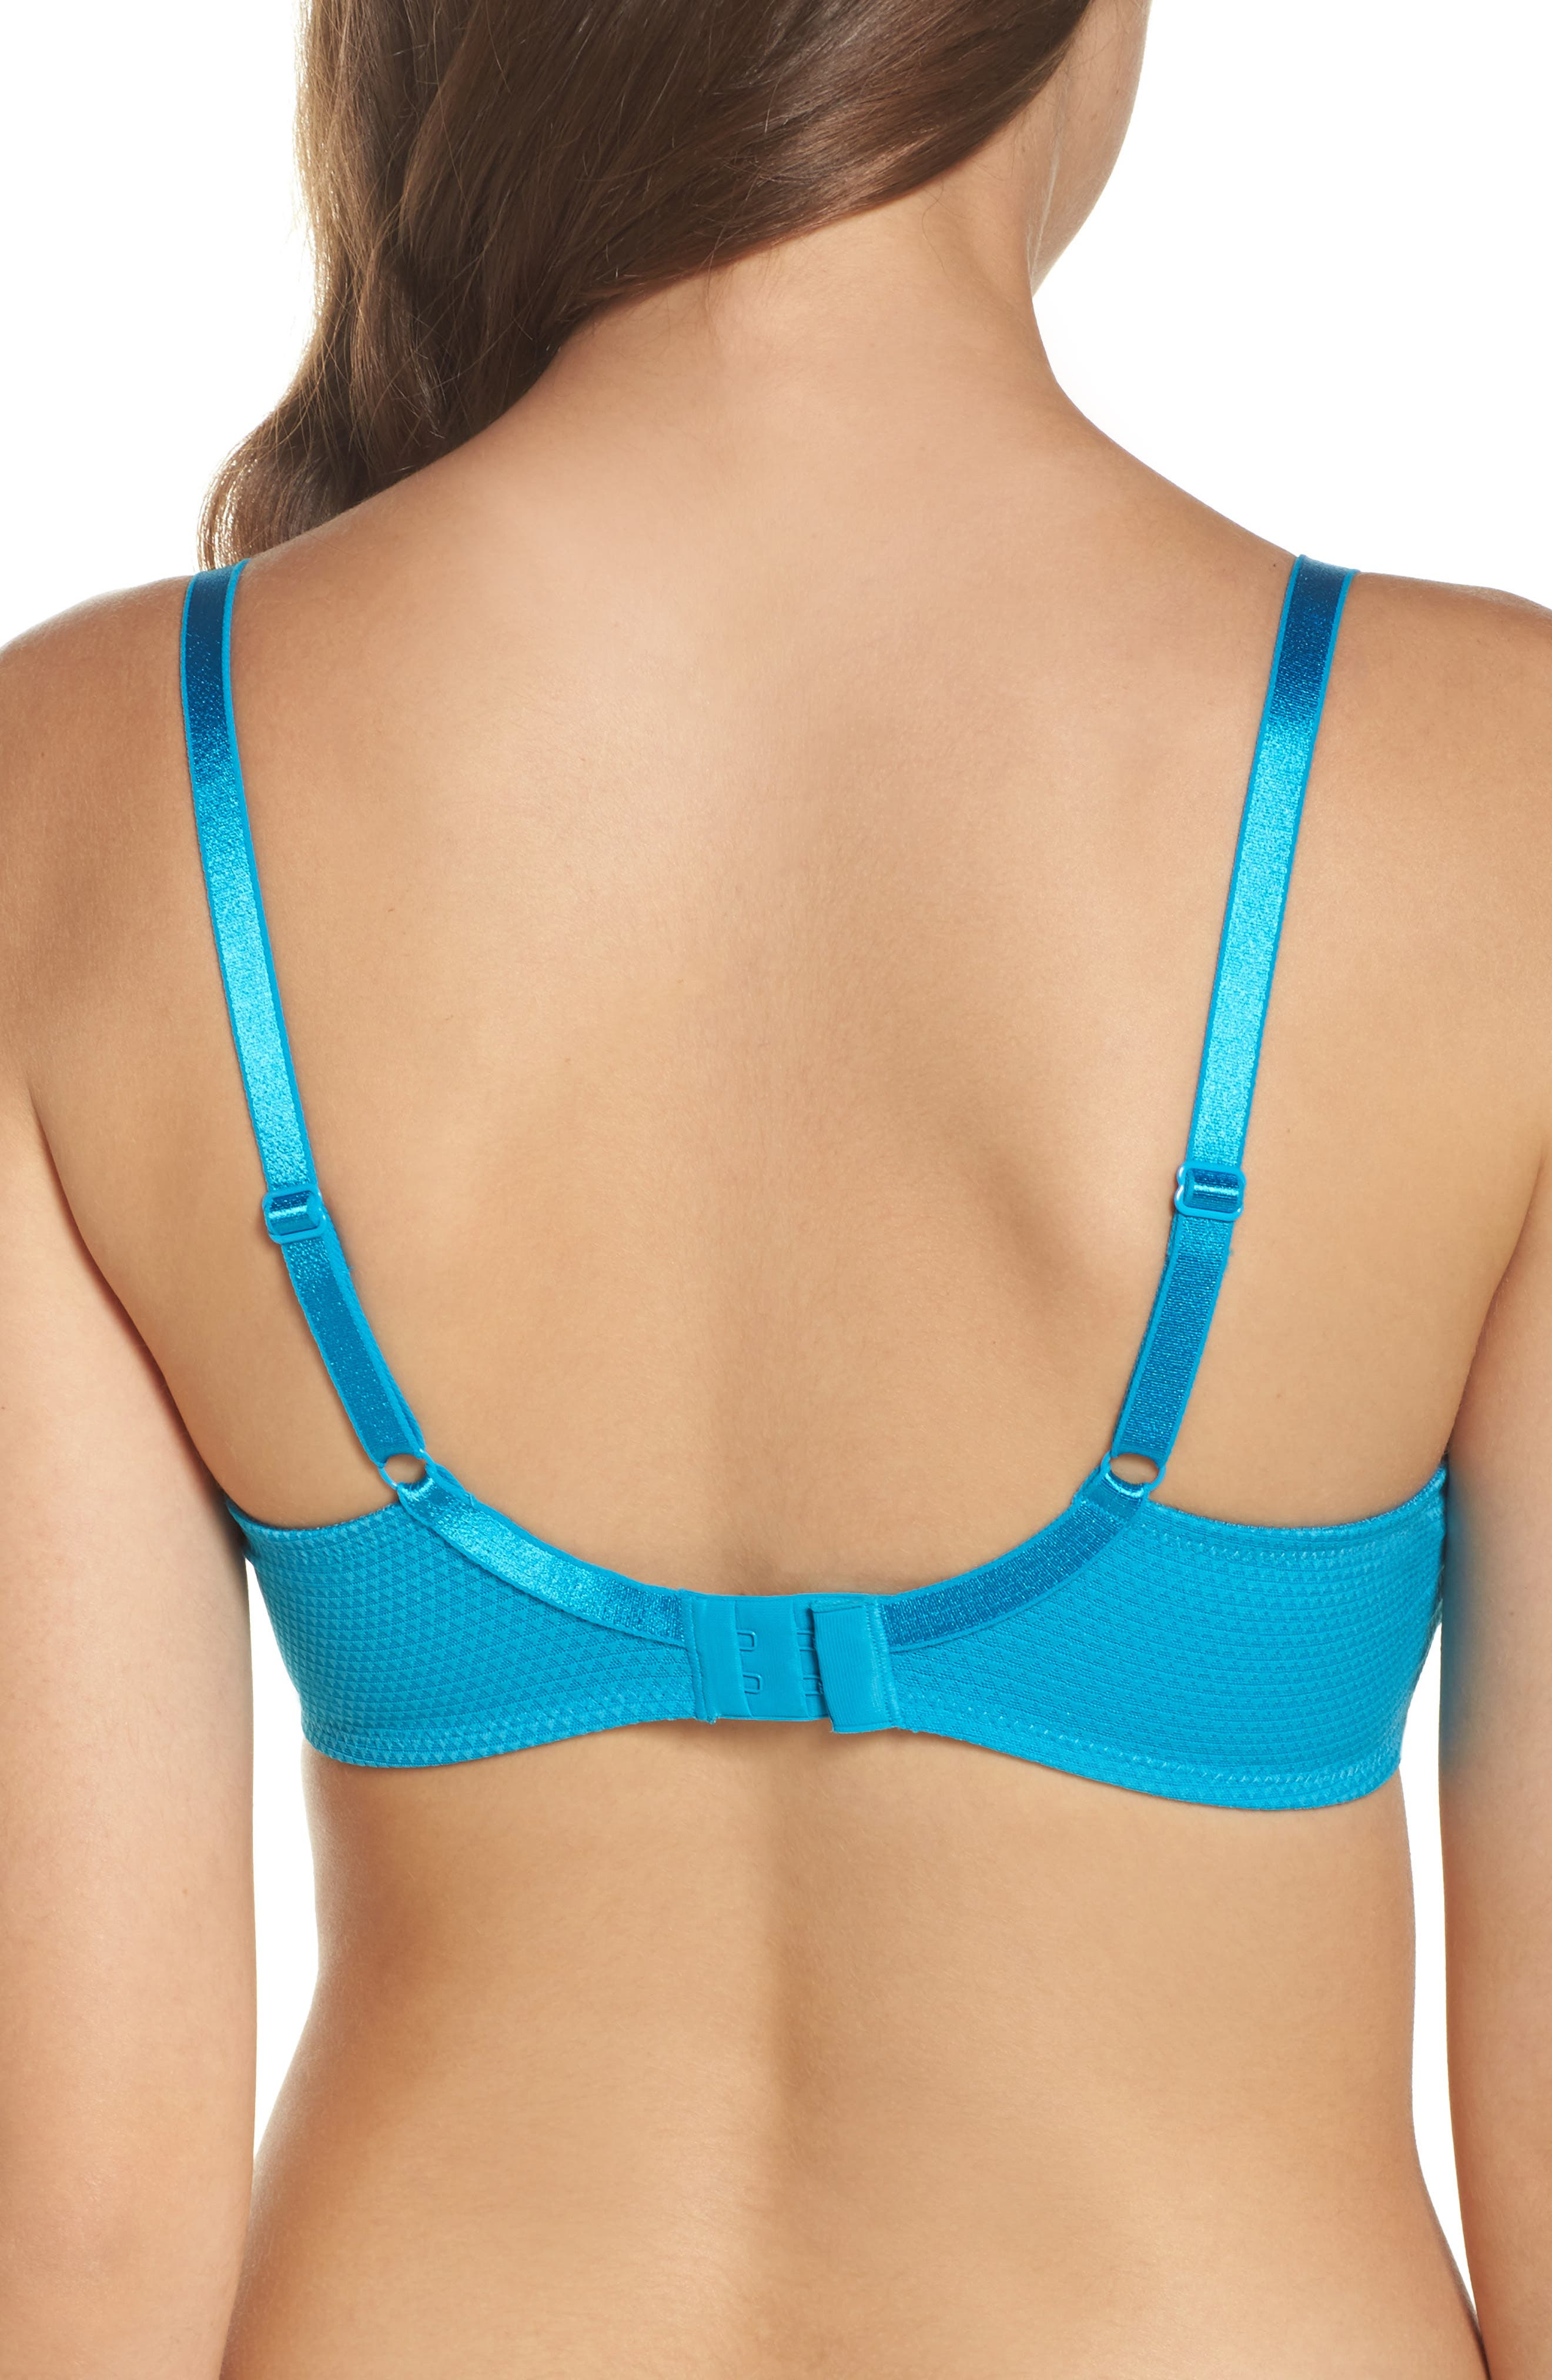 'Brooklyn' Underwire T-Shirt Bra,                             Alternate thumbnail 19, color,